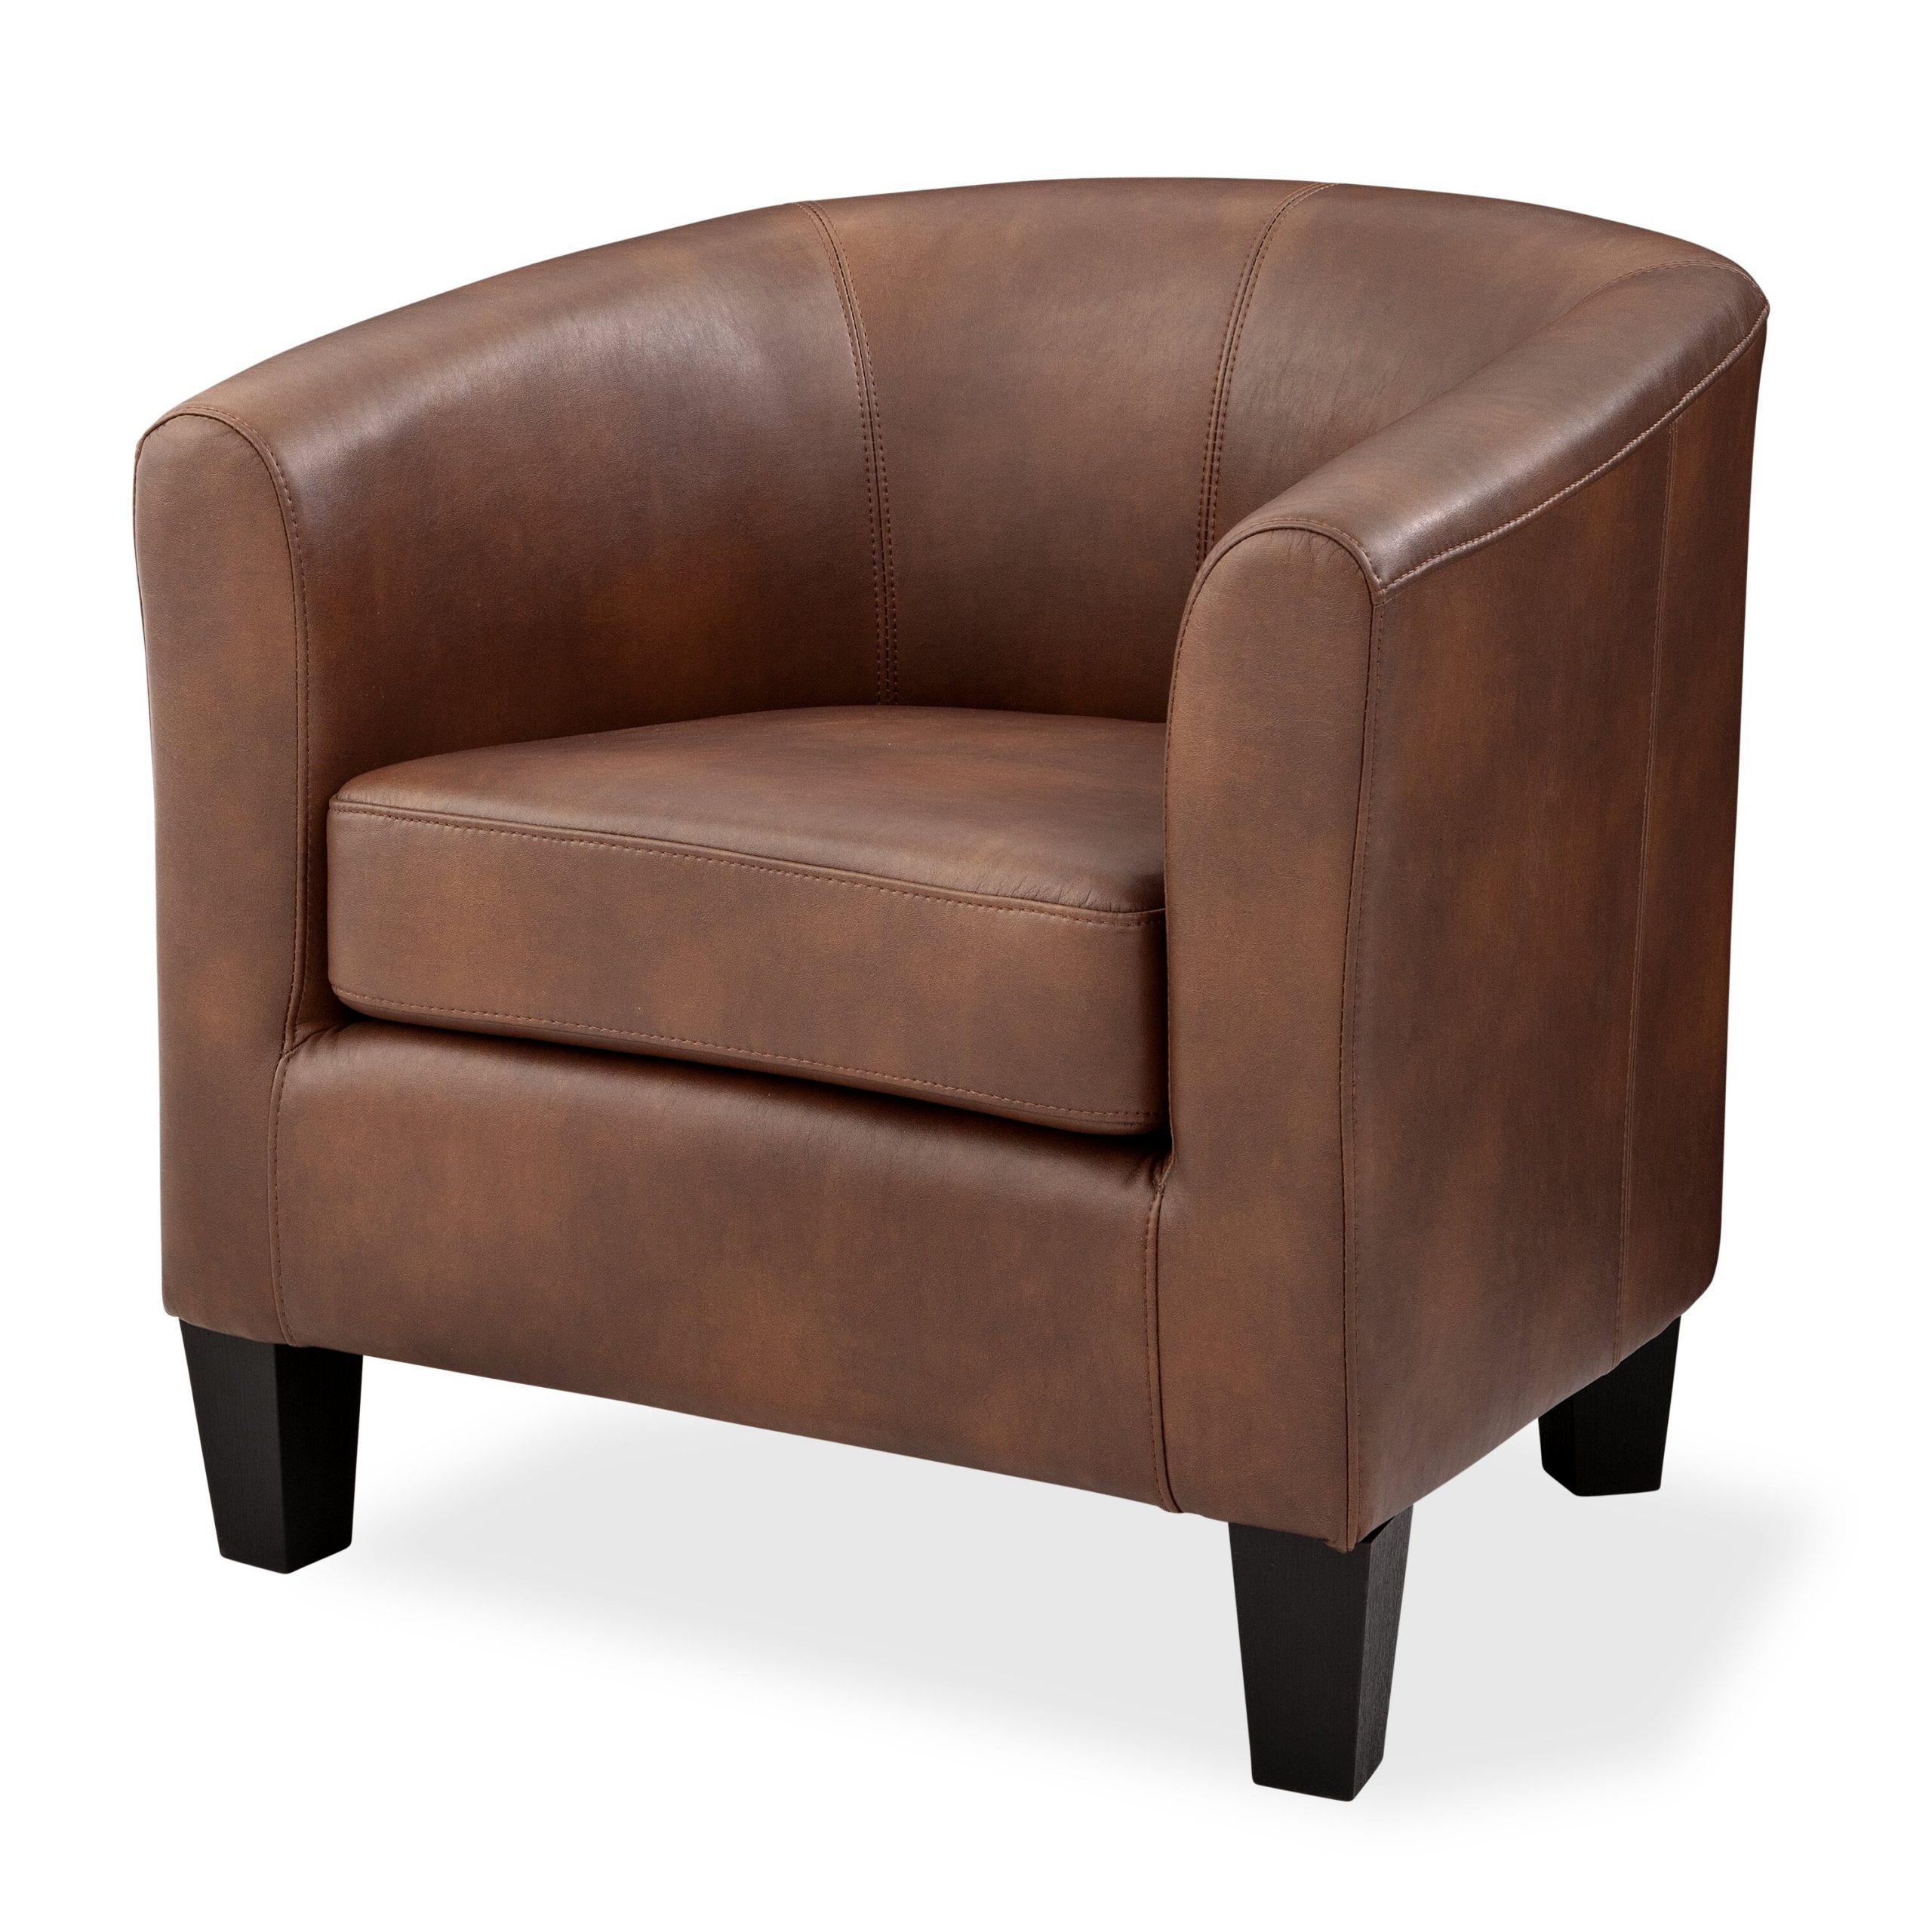 "Liam Faux Leather Barrel Chairs For Current Colden 30"" W Faux Leather Barrel Chair (View 8 of 20)"